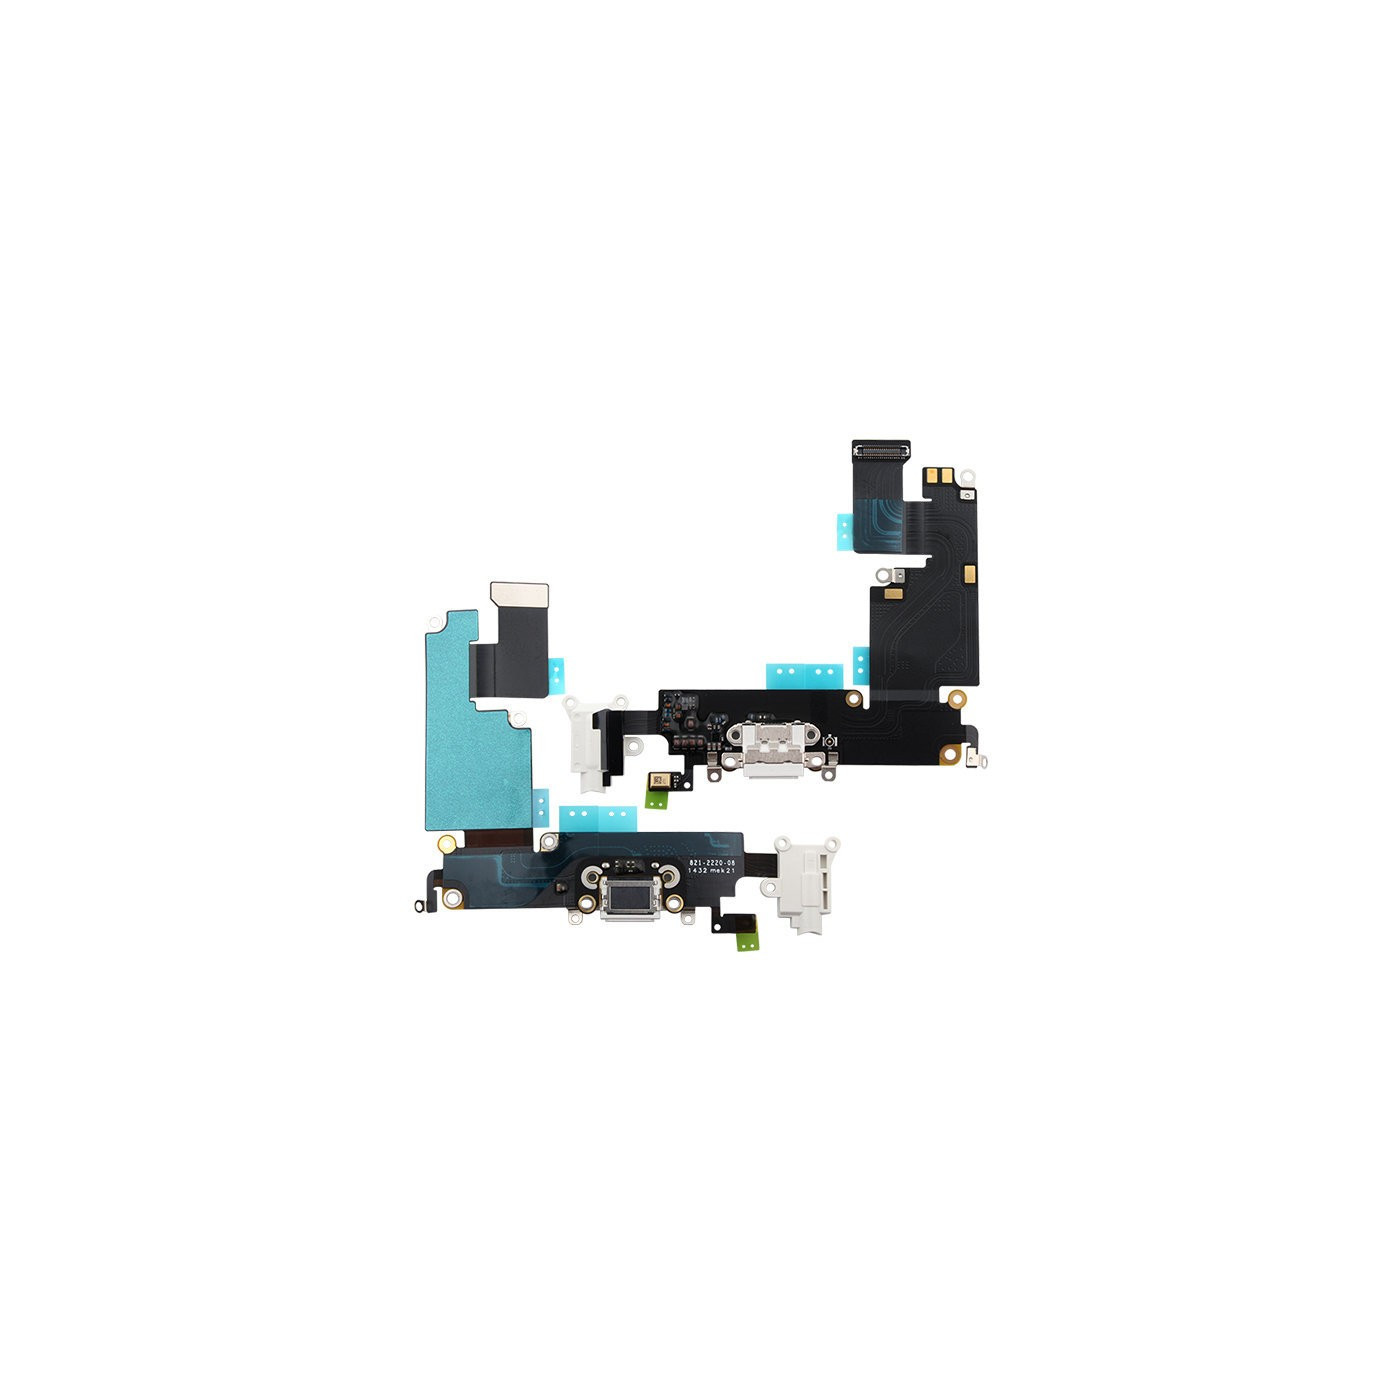 Conector de carga plana y flexible para iPhone 6 Plus, base de micrófono blanco